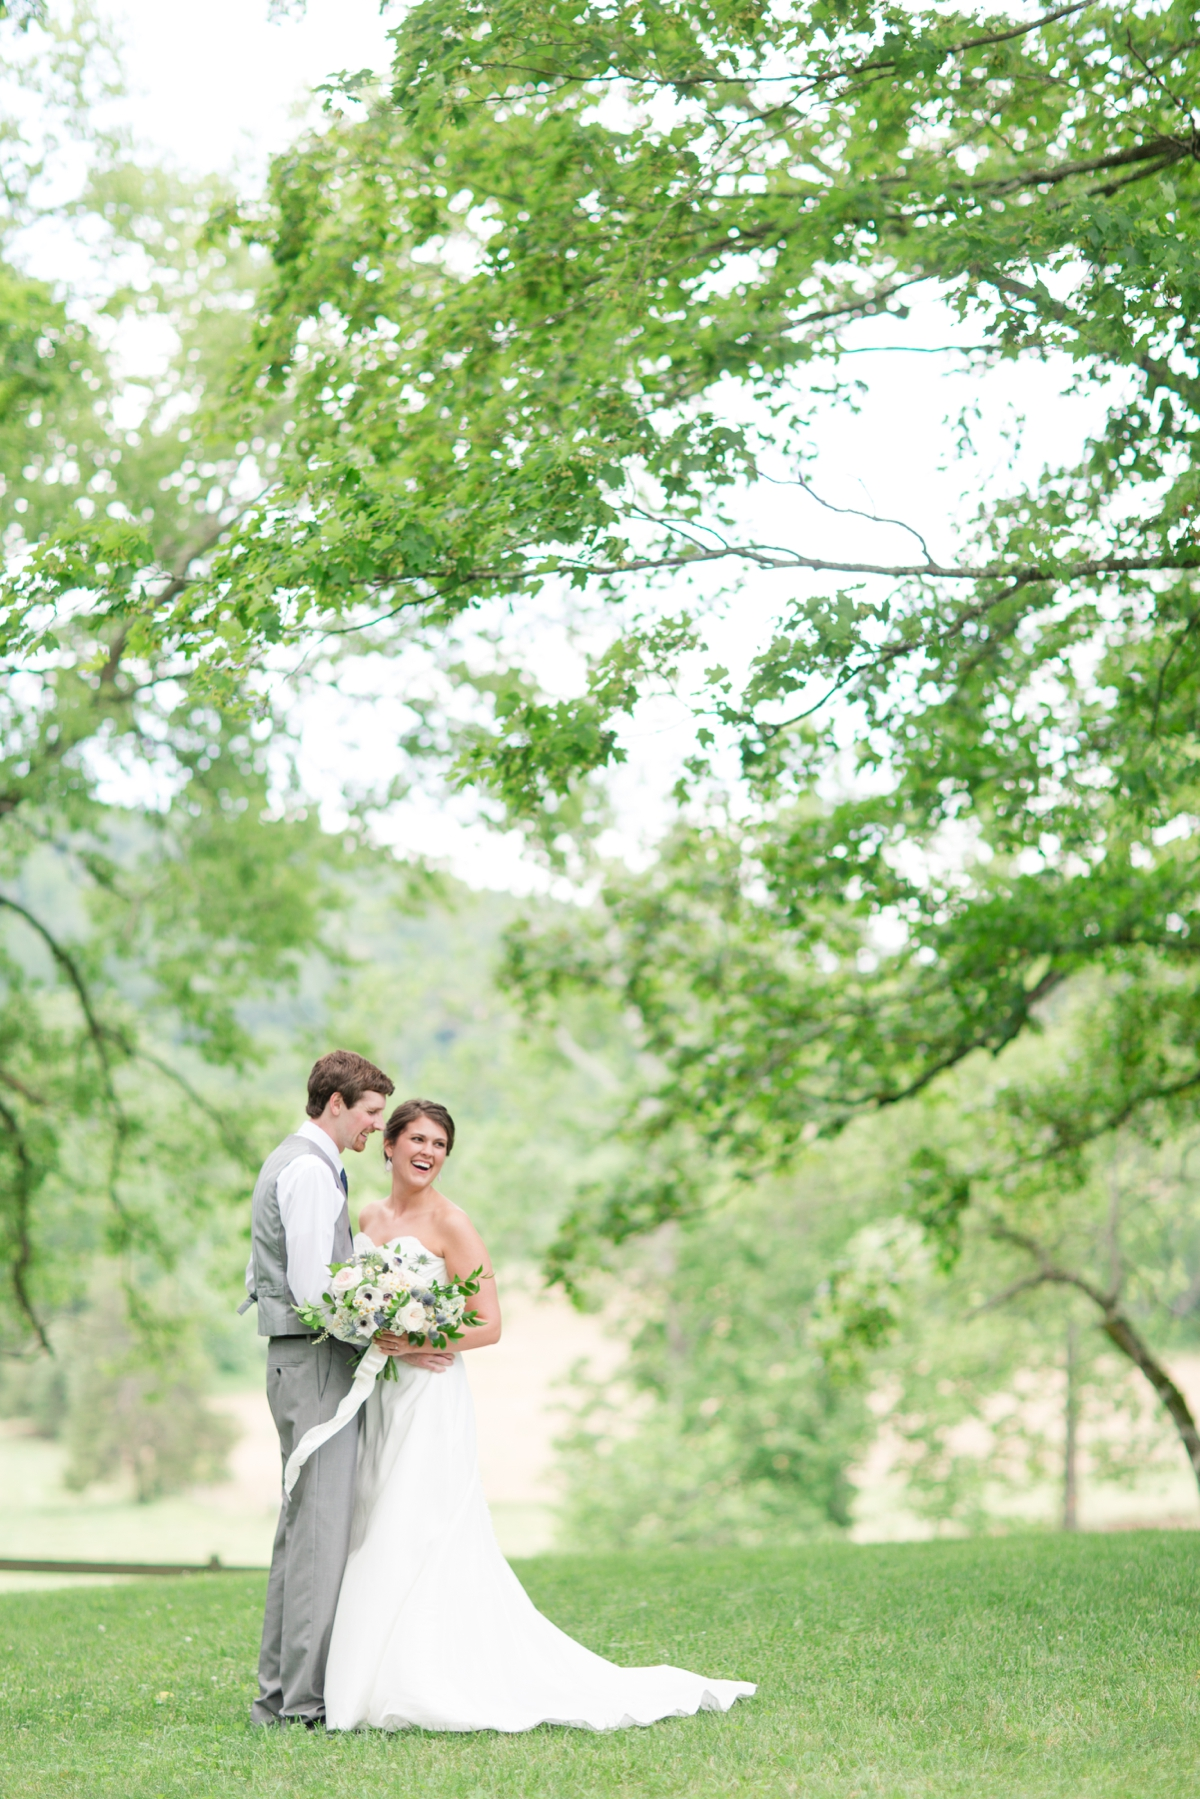 Big Spring Farm Barn Wedding photos barn venue_1852